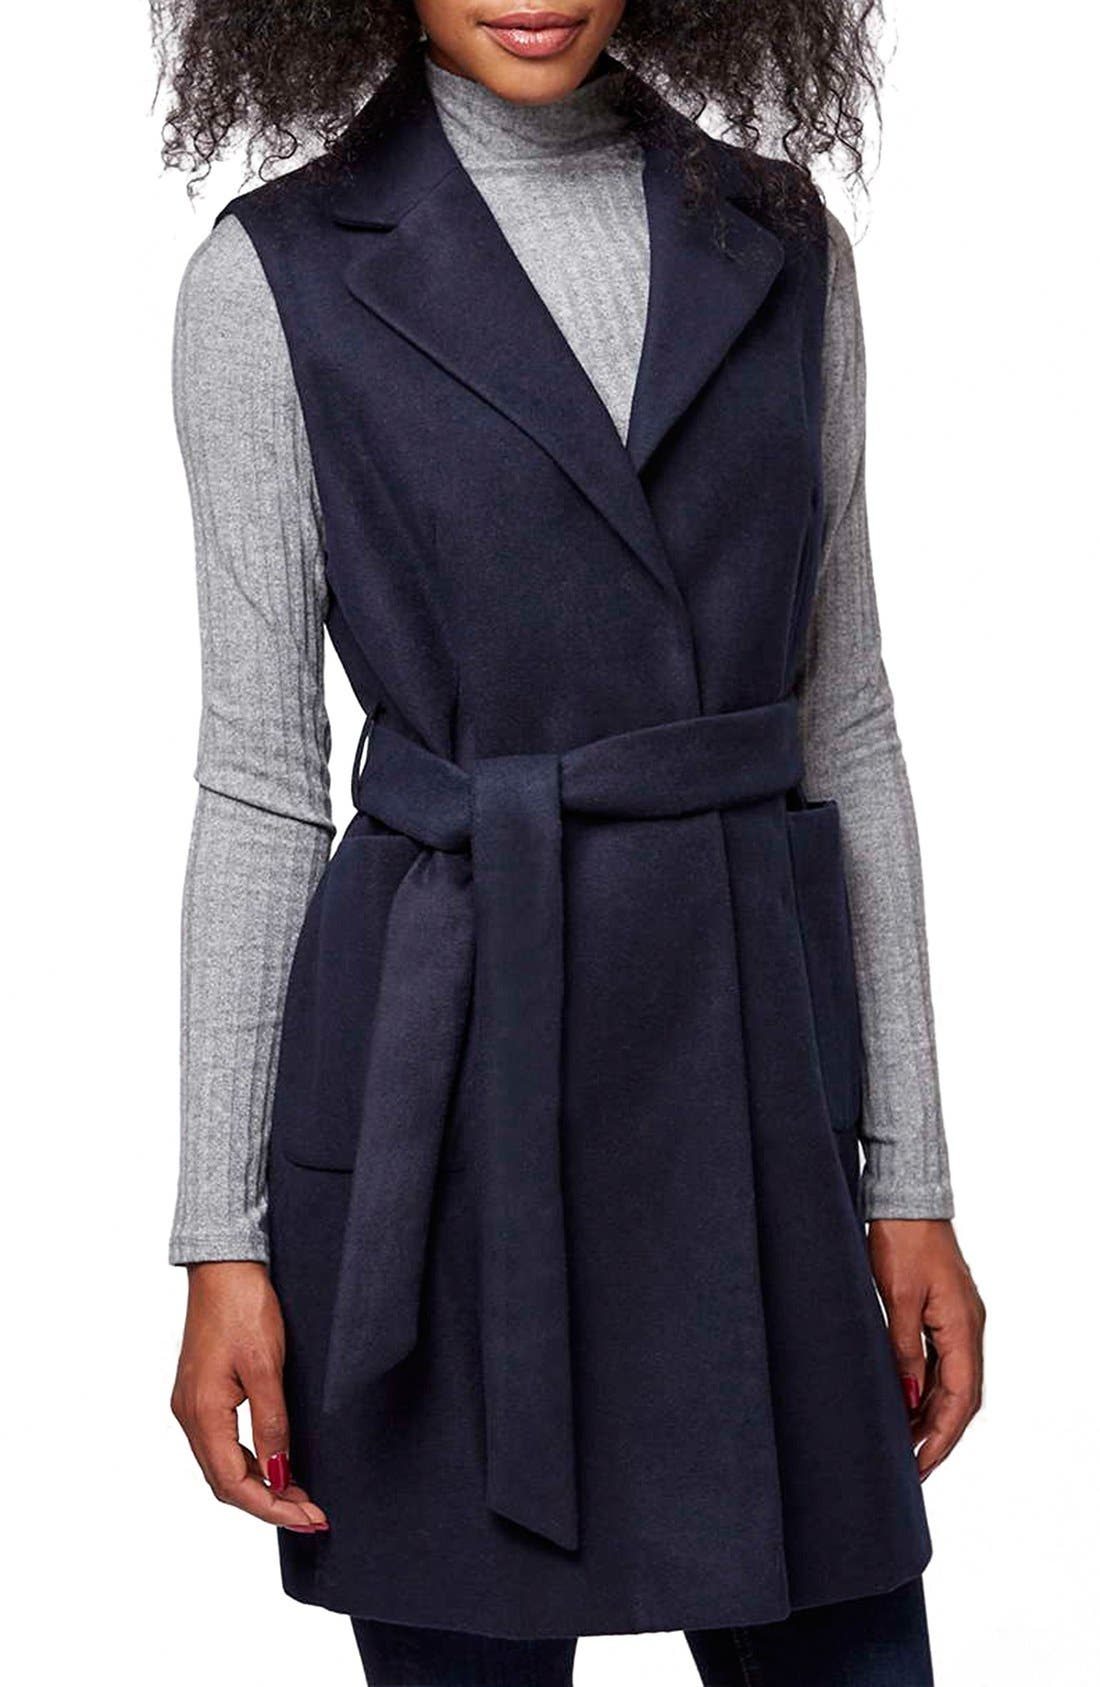 Alternate Image 1 Selected - Topshop Sleeveless Belted Coat (Petite)